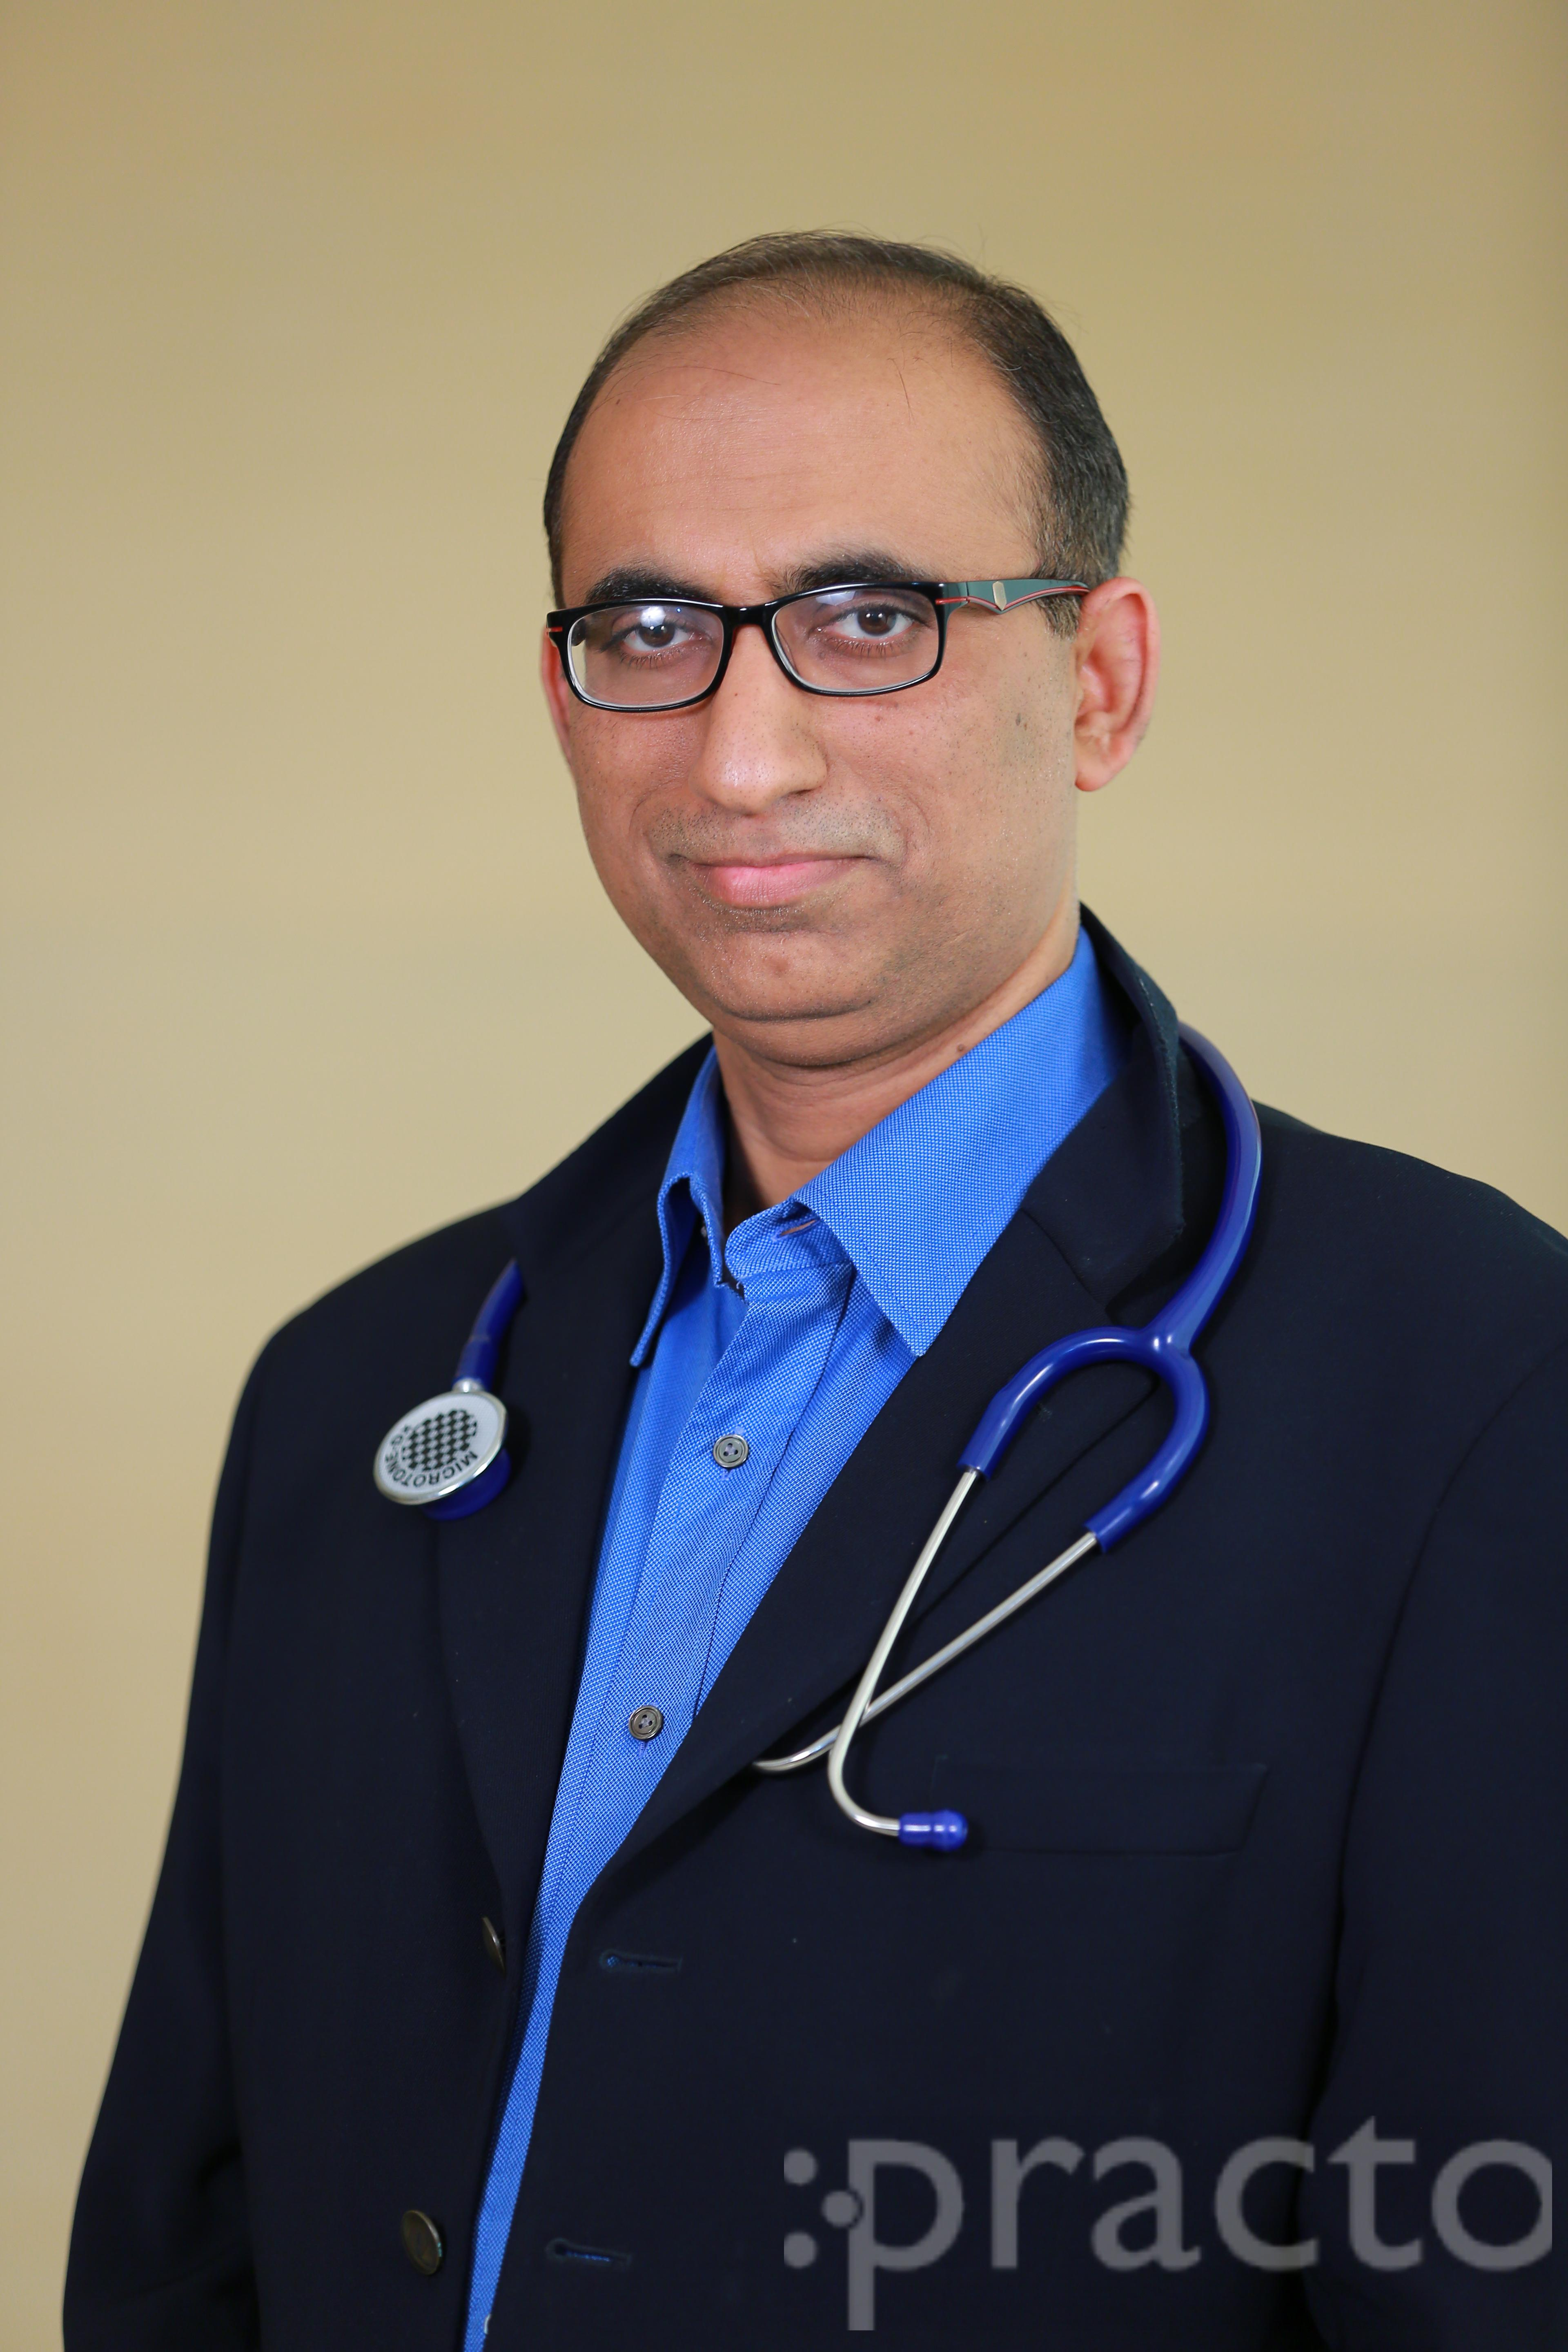 Dr. Anish Behl - Endocrinologist